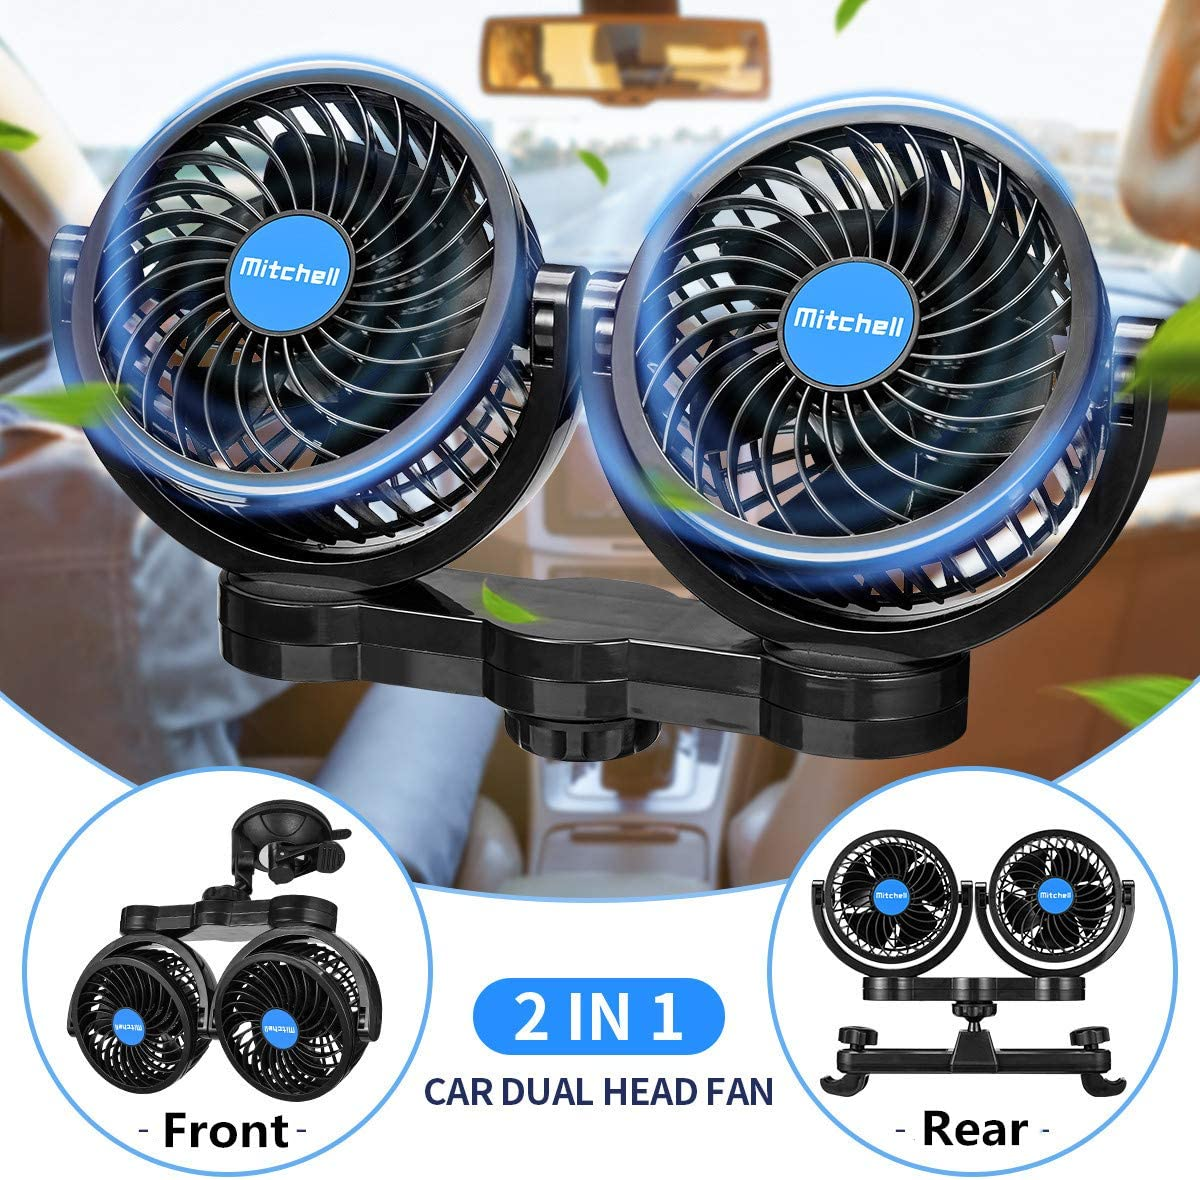 JoyTutus 2 In 1 Dual Head Car Fan with Suction Cup + Rear Seat Bracket, 360° Portable Electric Car Fan for Front Rear Seat, 12V Low Noise Car Cooling Fan Cigarette